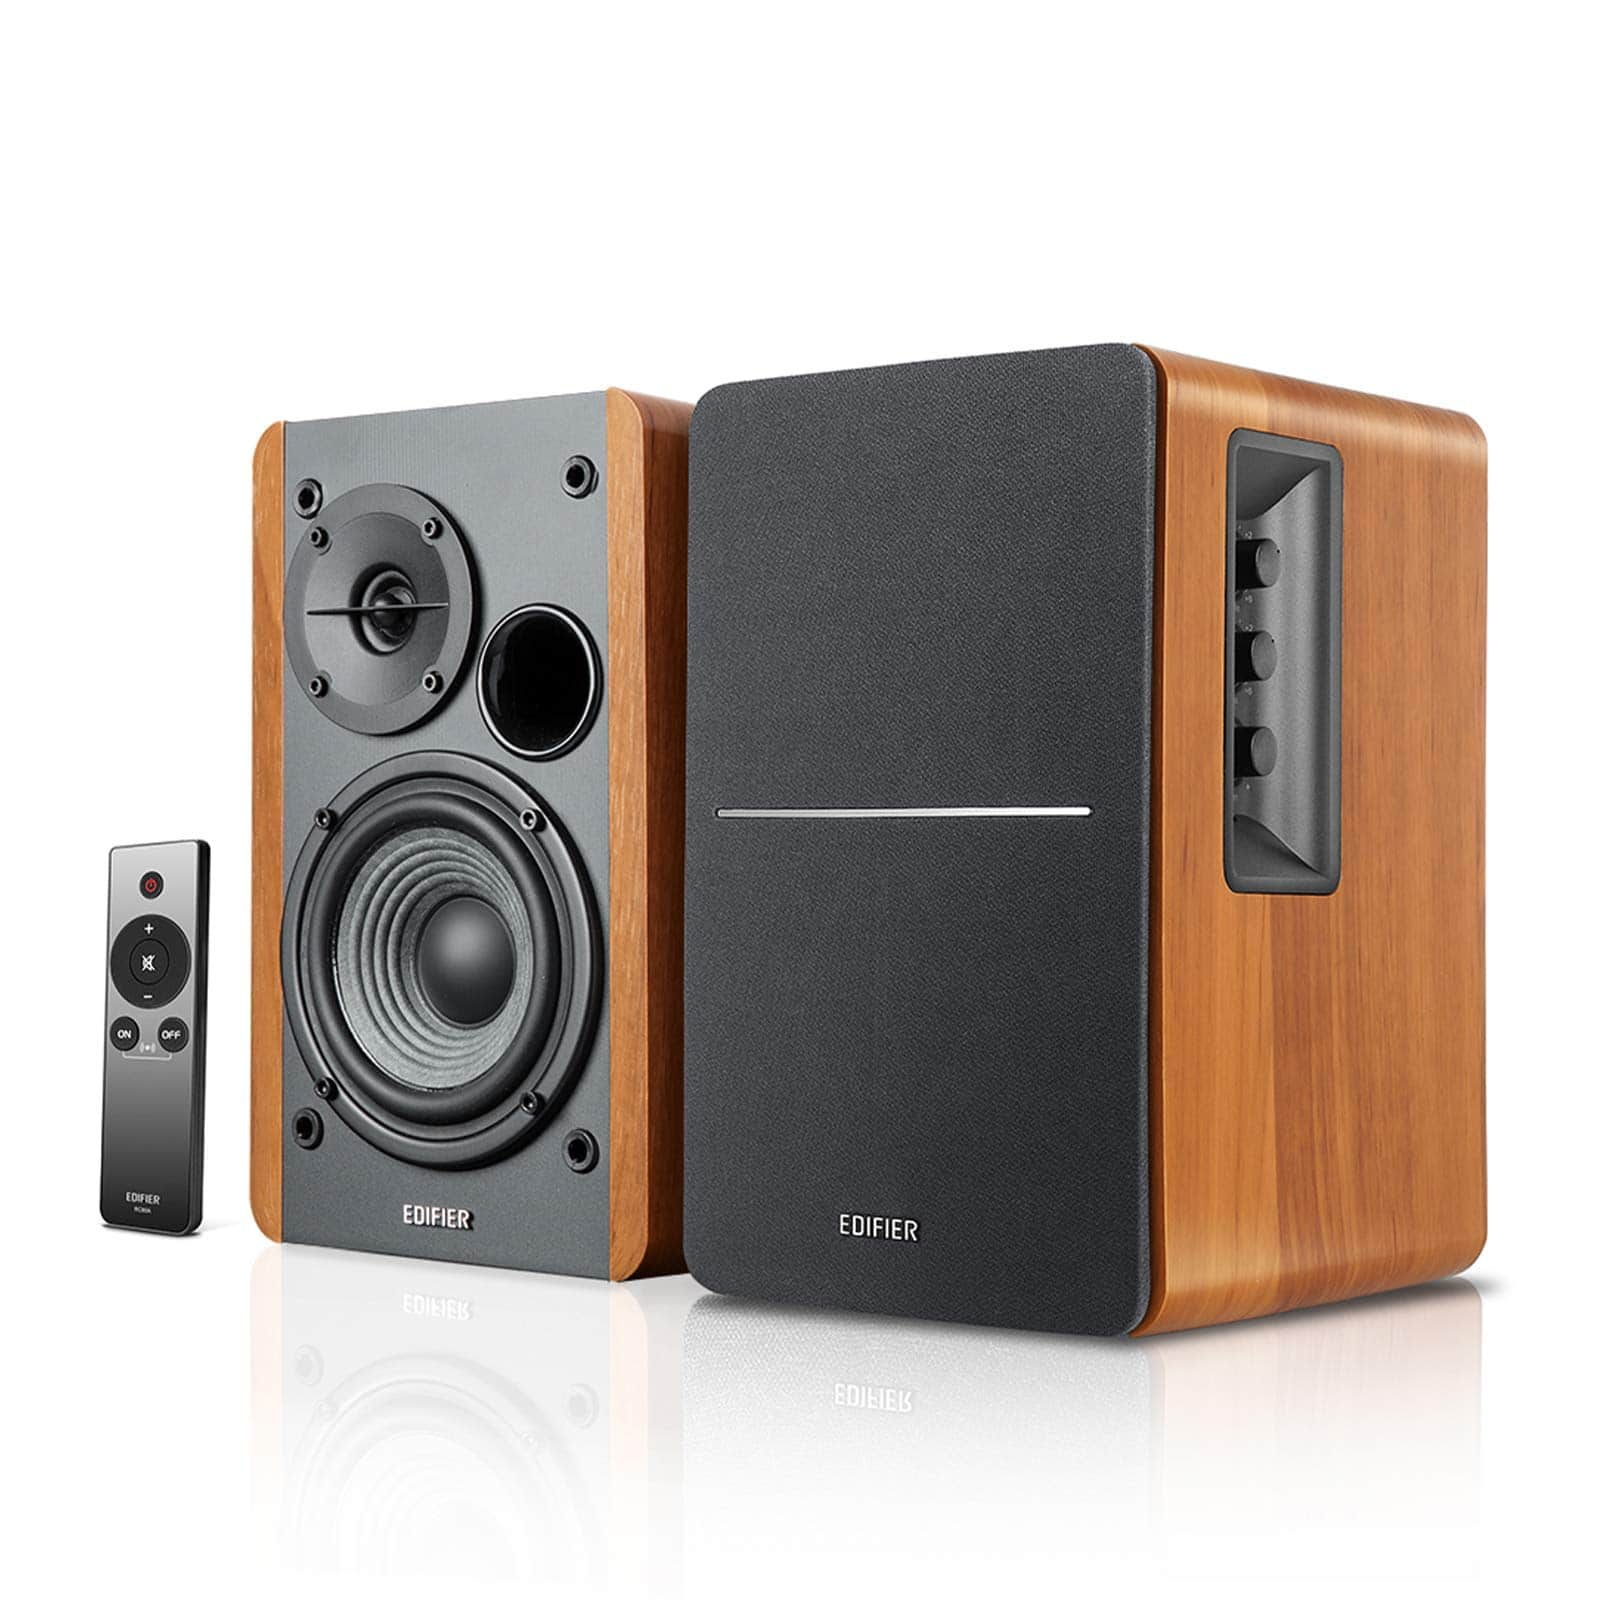 Edifier R1280Ts Powered Bookshelf Speakers - 2.0 Stereo Active Near Field Monitors - Studio Monitor Speaker - 42 Watts RMS with Subwoofer Line Out - Wooden Enclosure $98.99